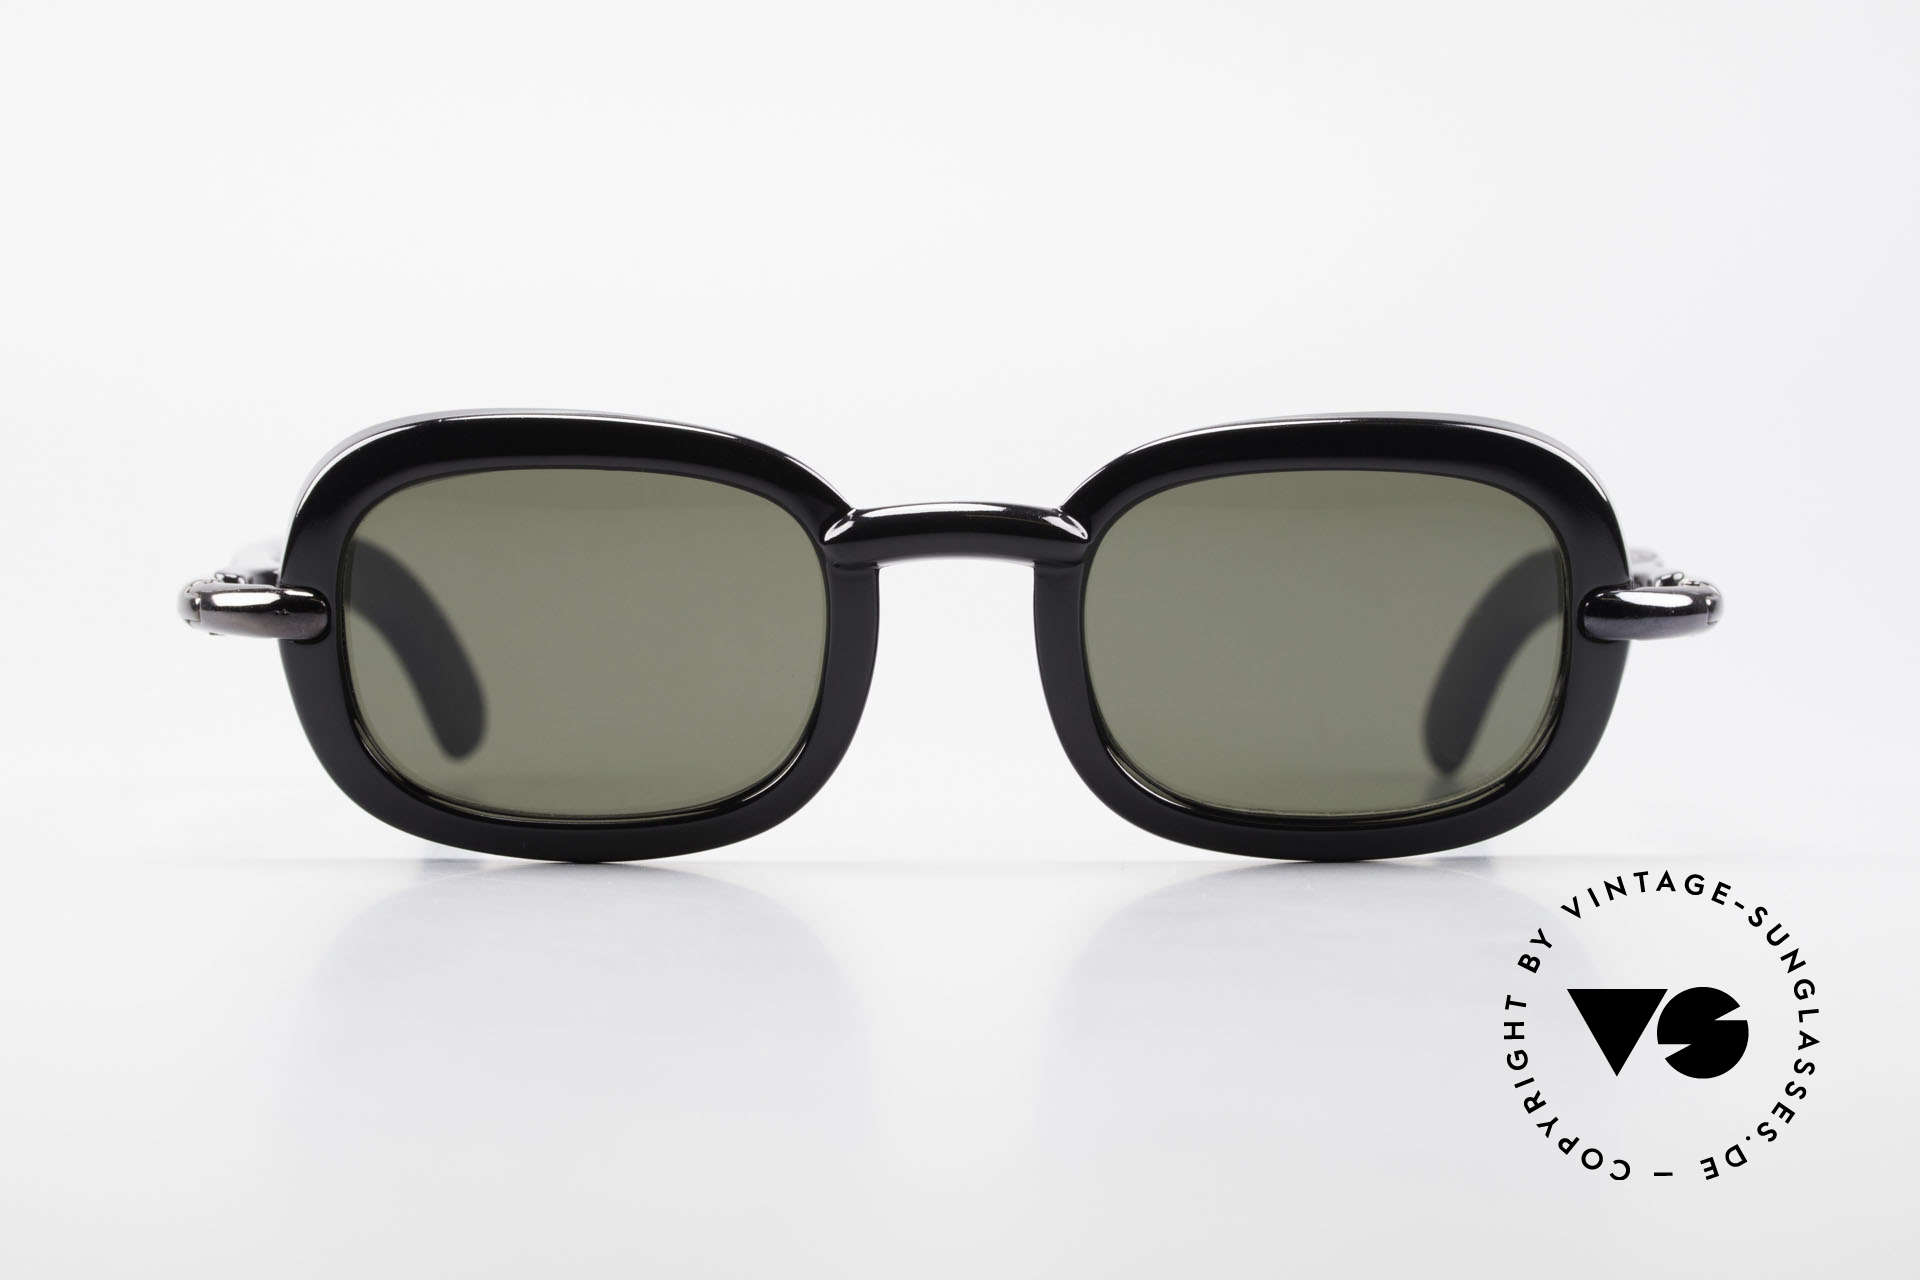 Karl Lagerfeld 4117 Rare 90's Ladies Sunglasses, 1990's Lagerfeld creations were limited-lot productions, Made for Women